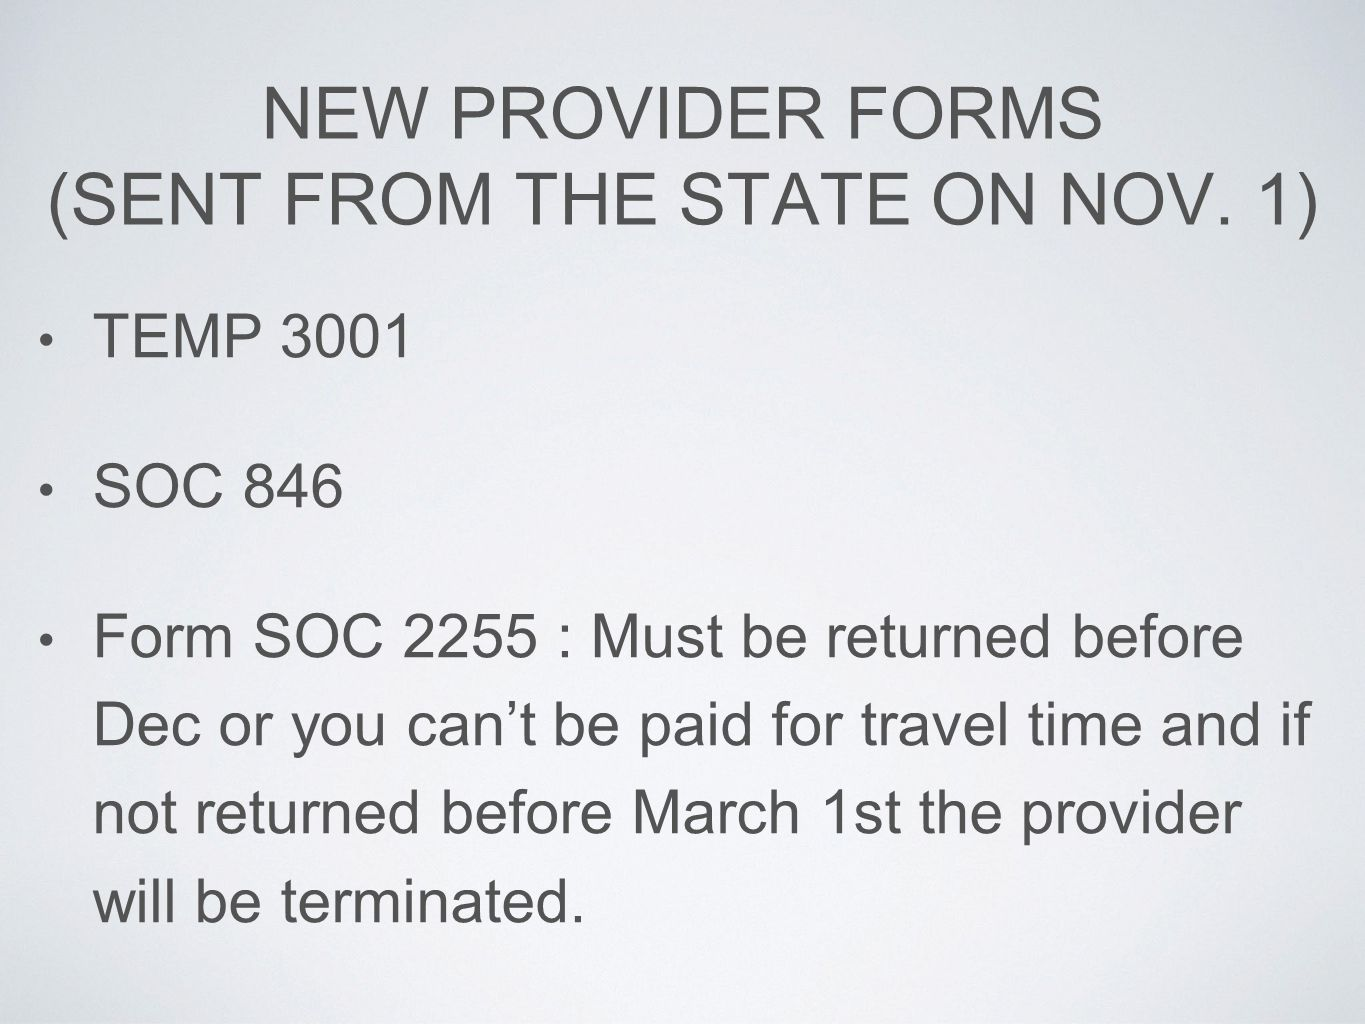 NEW PROVIDER FORMS (SENT FROM THE STATE ON NOV. 1)